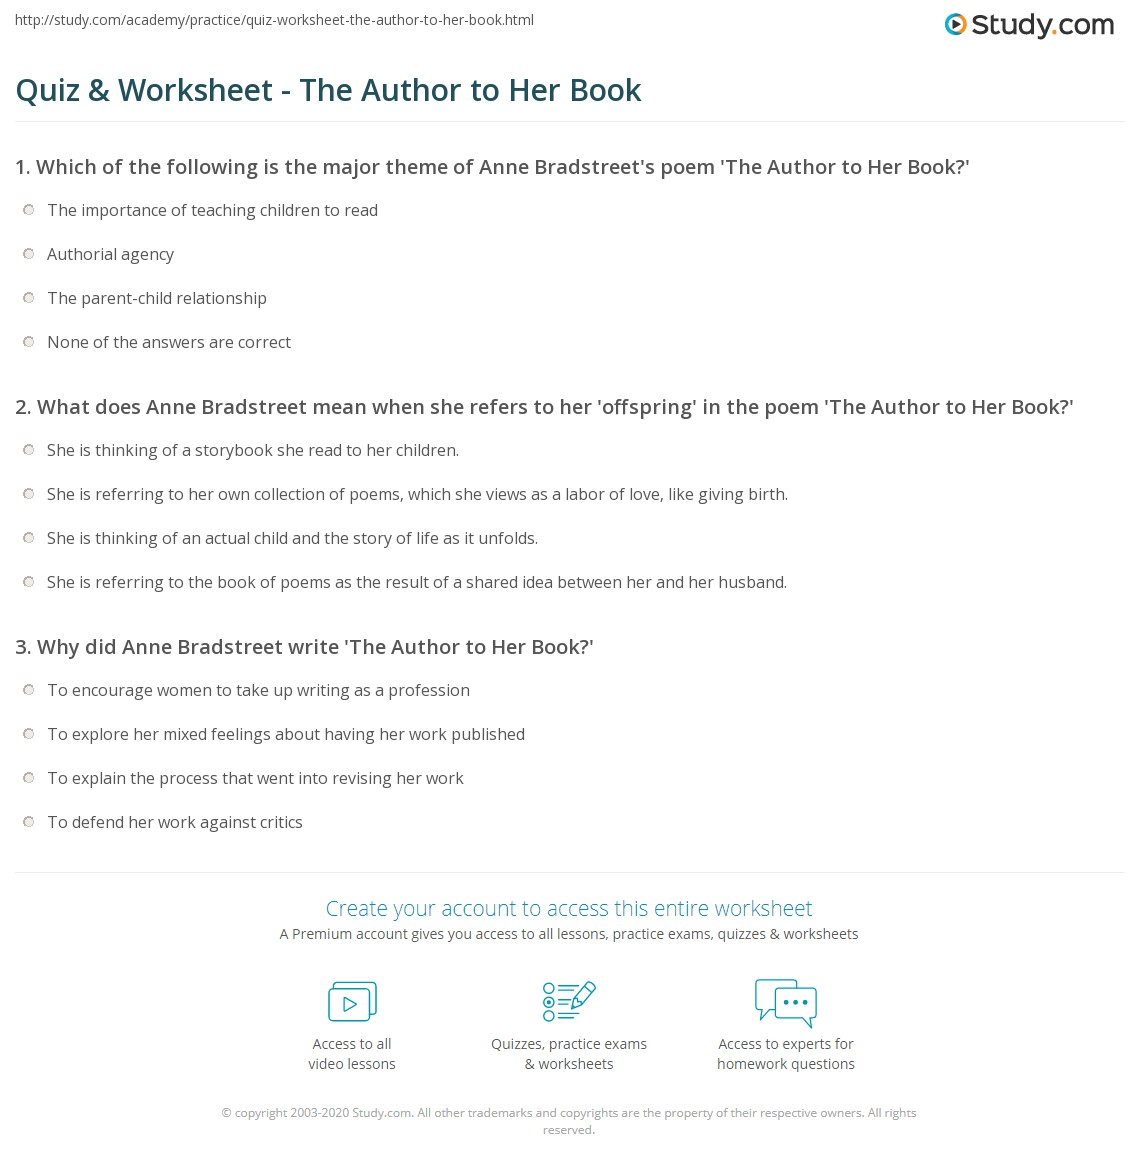 Quiz & Worksheet The Author to Her Book